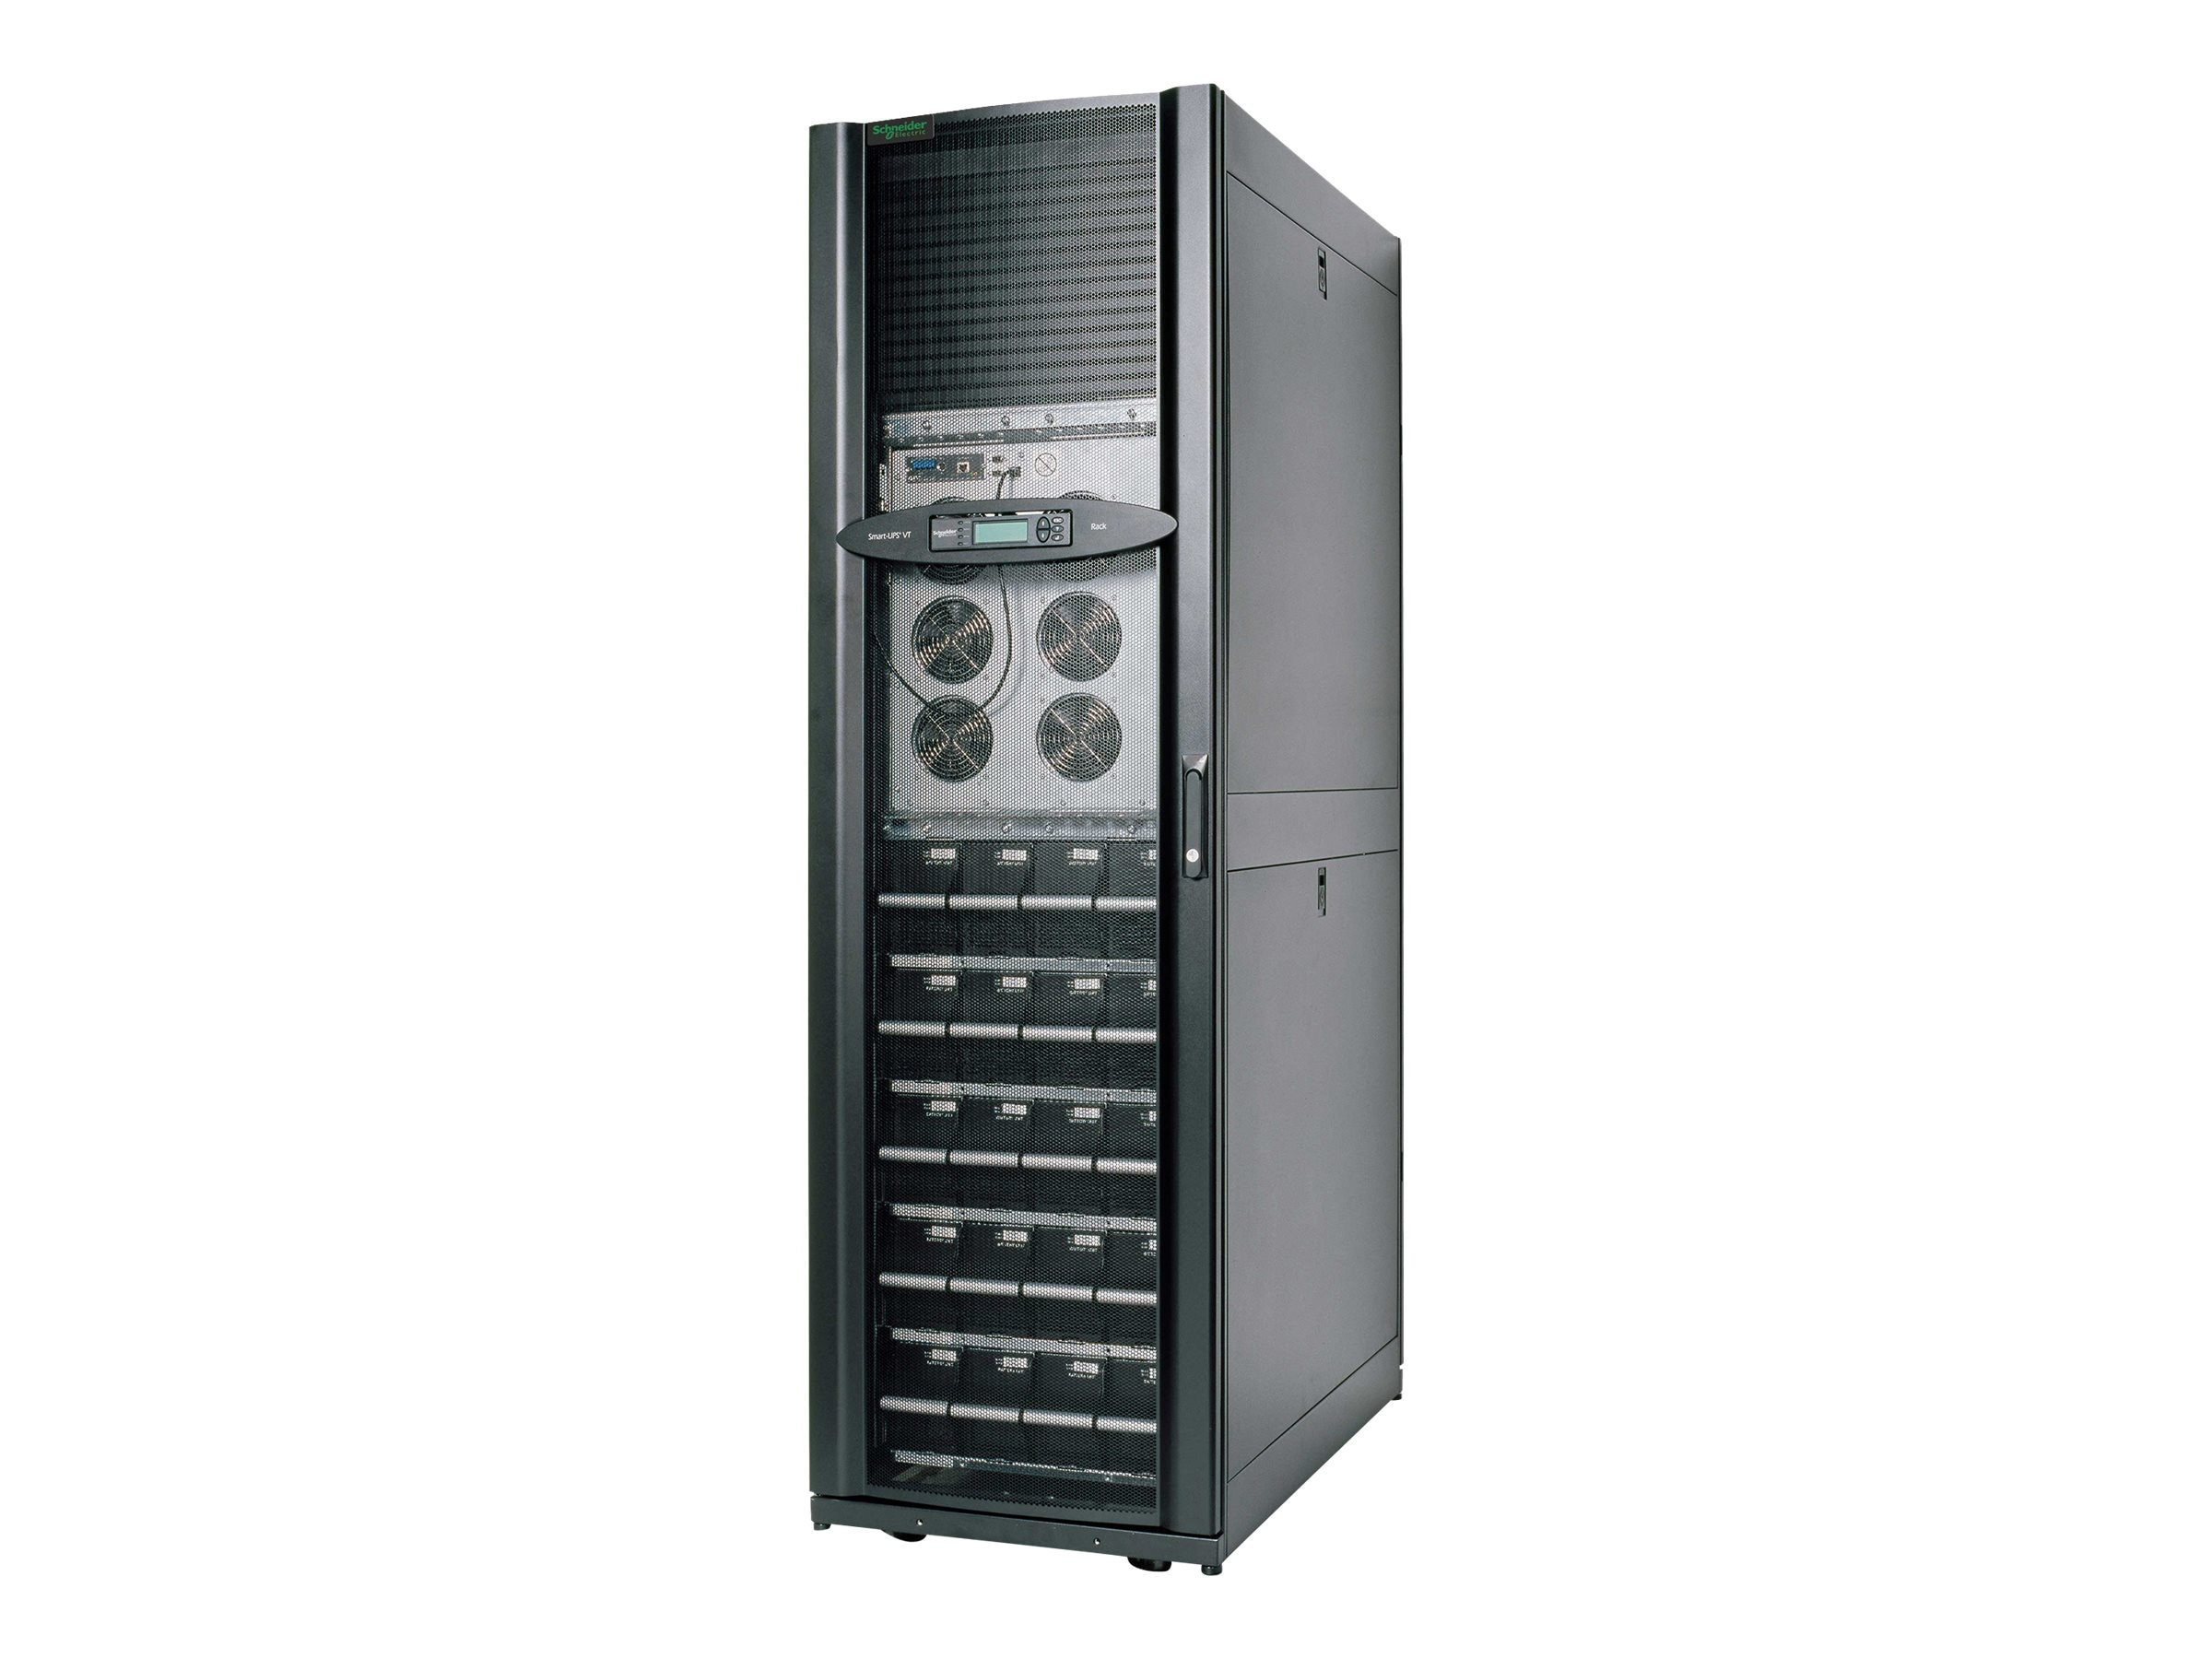 APC Smart-UPS VT 30 kVA 208V Rack with (4) Battery Modules Expandable to (5) with PDU, Startup, SUVTR30KF4B5S, 7330002, Battery Backup/UPS